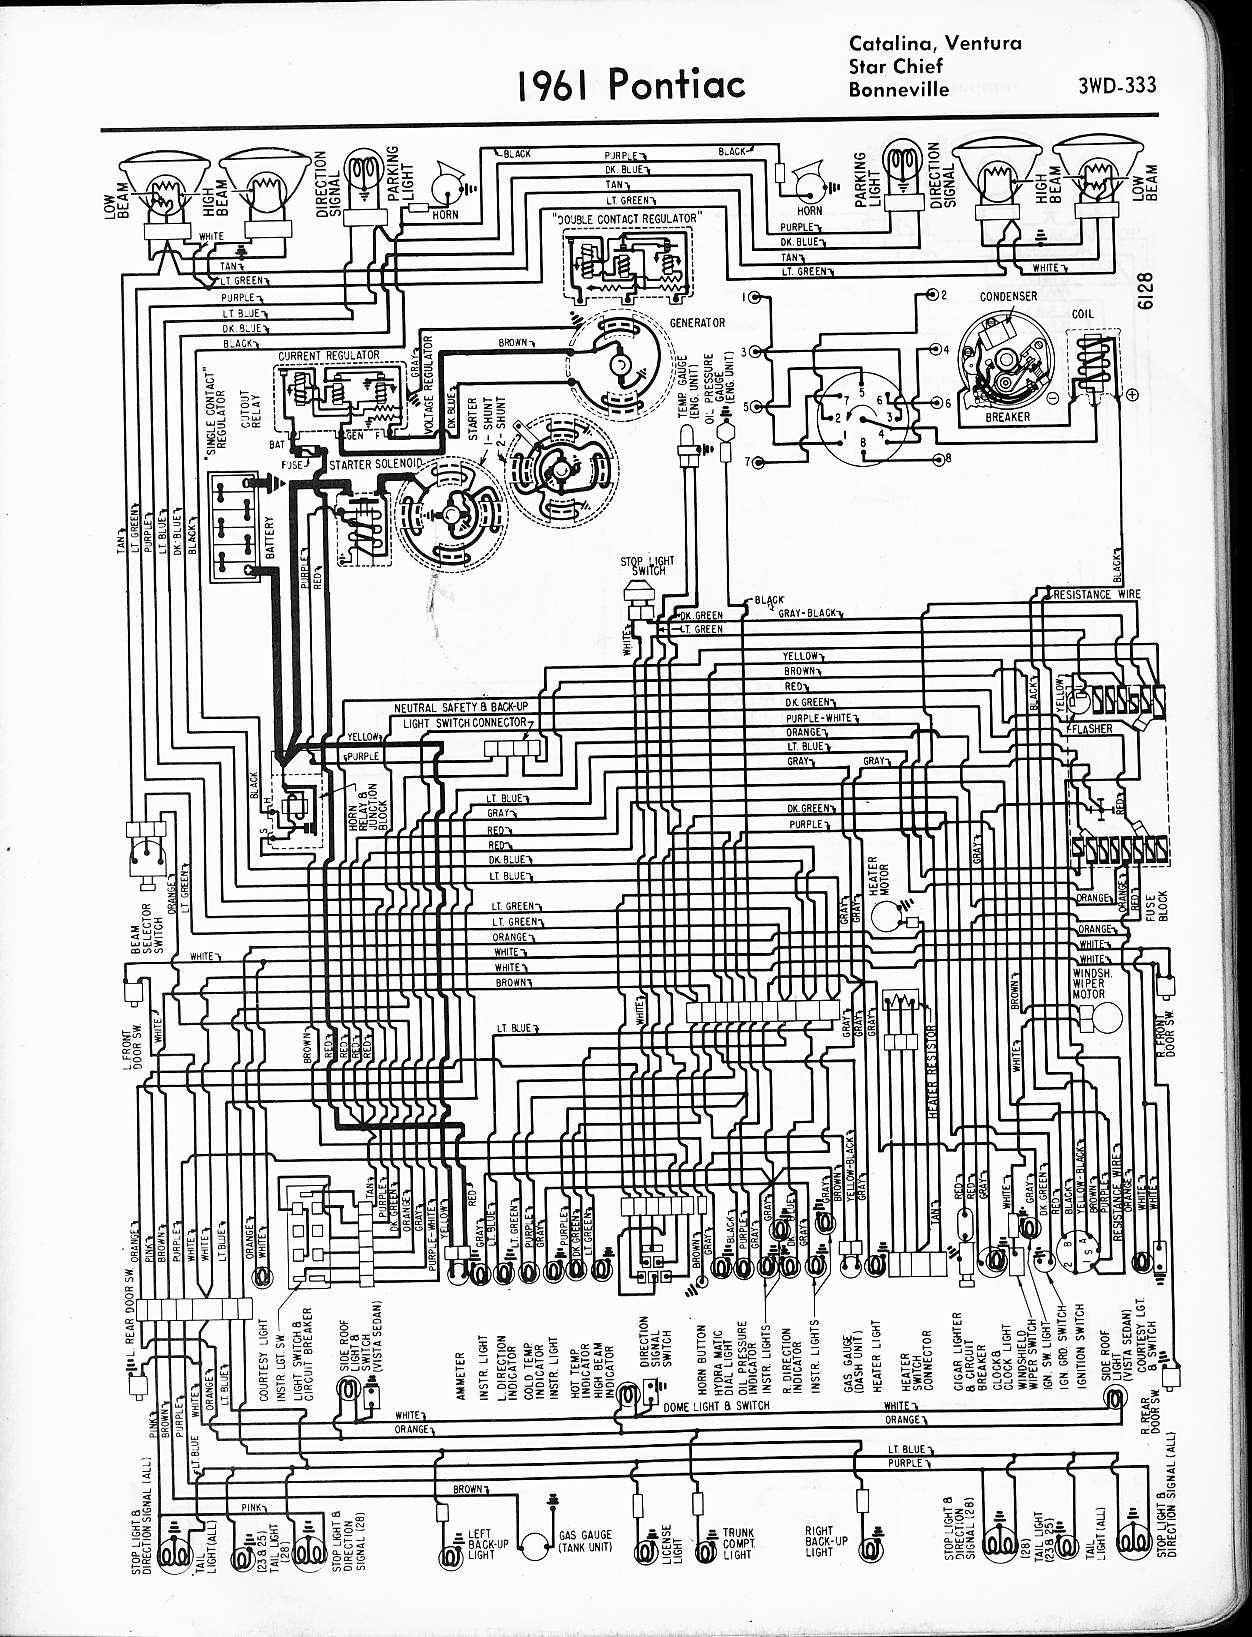 2000 pontiac bonneville electrical diagram 2000 98 pontiac bonneville wiring diagram 98 auto wiring diagram on 2000 pontiac bonneville electrical diagram